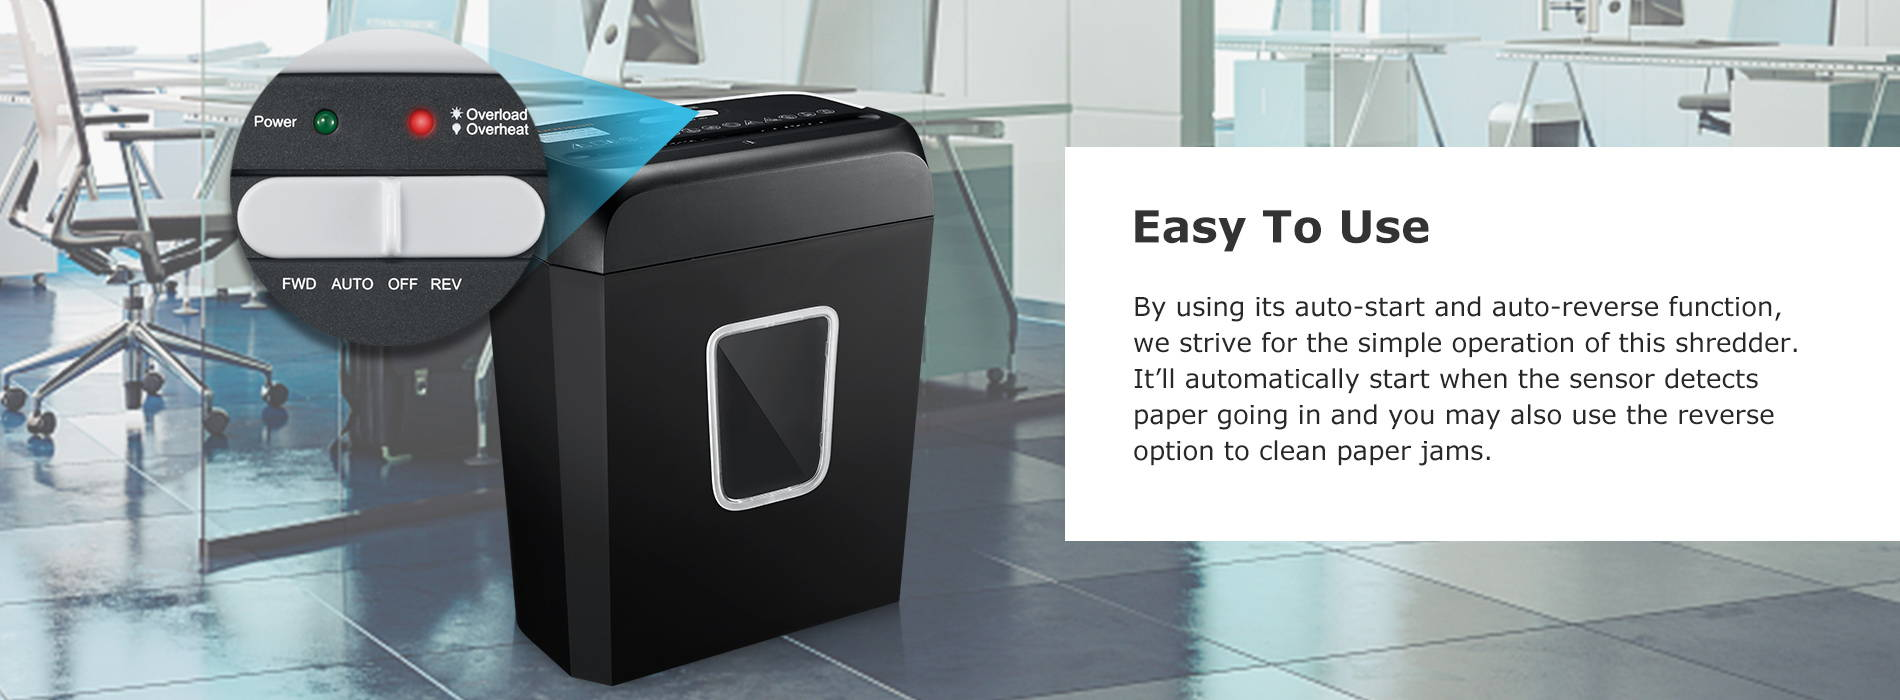 Easy To Use By using its auto-start and auto-reverse function, we strive for the simple operation of this shredder. It'll automatically start when the sensor detects paper going in and you may also use the reverse option to clean paper jams.